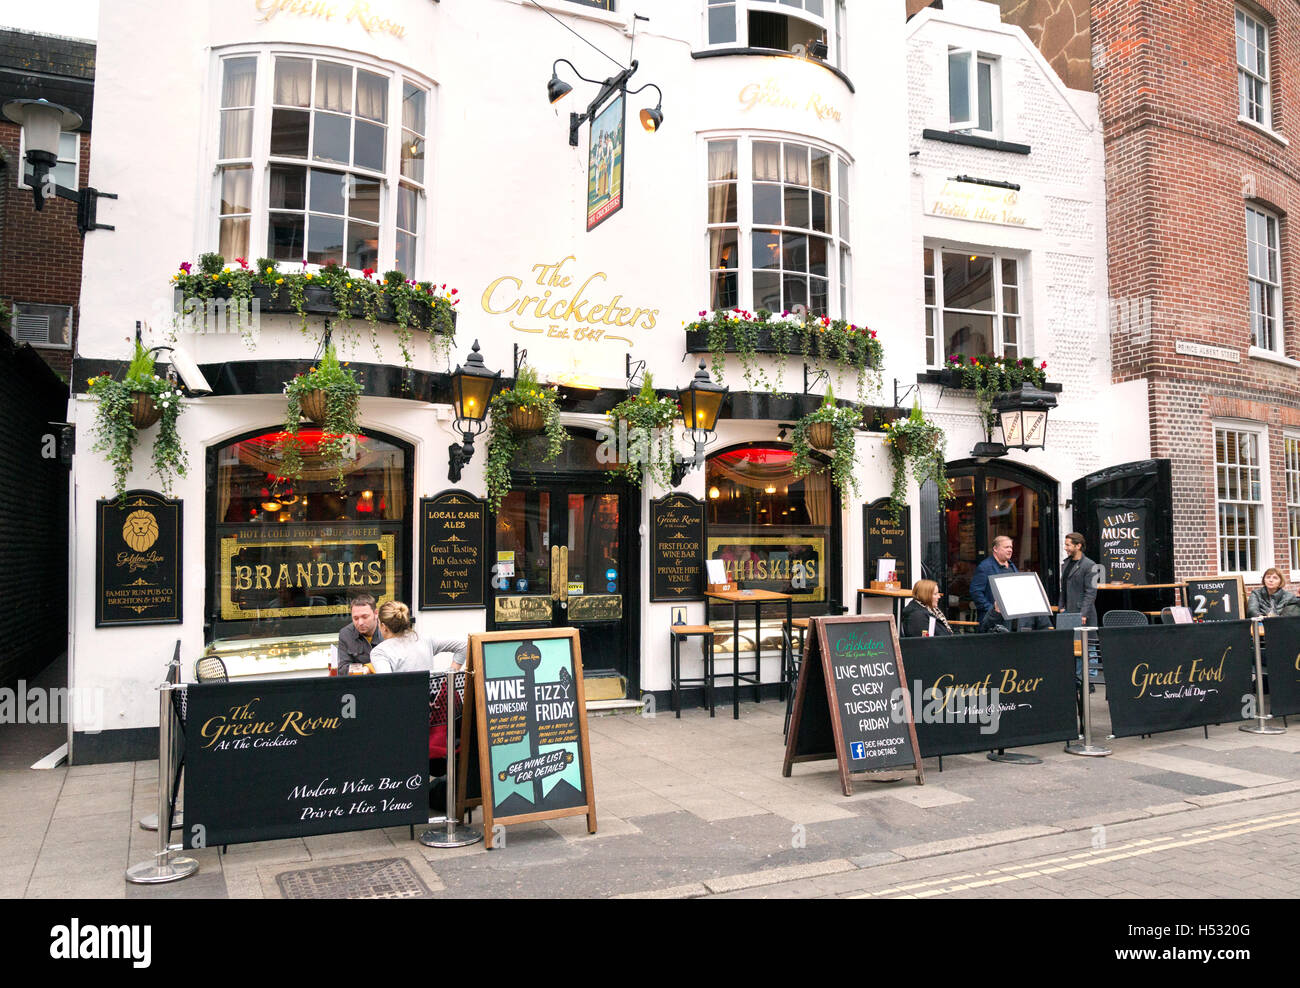 The Cricketers pub, the Lanes, Brighton, Sussex UK - Stock Image